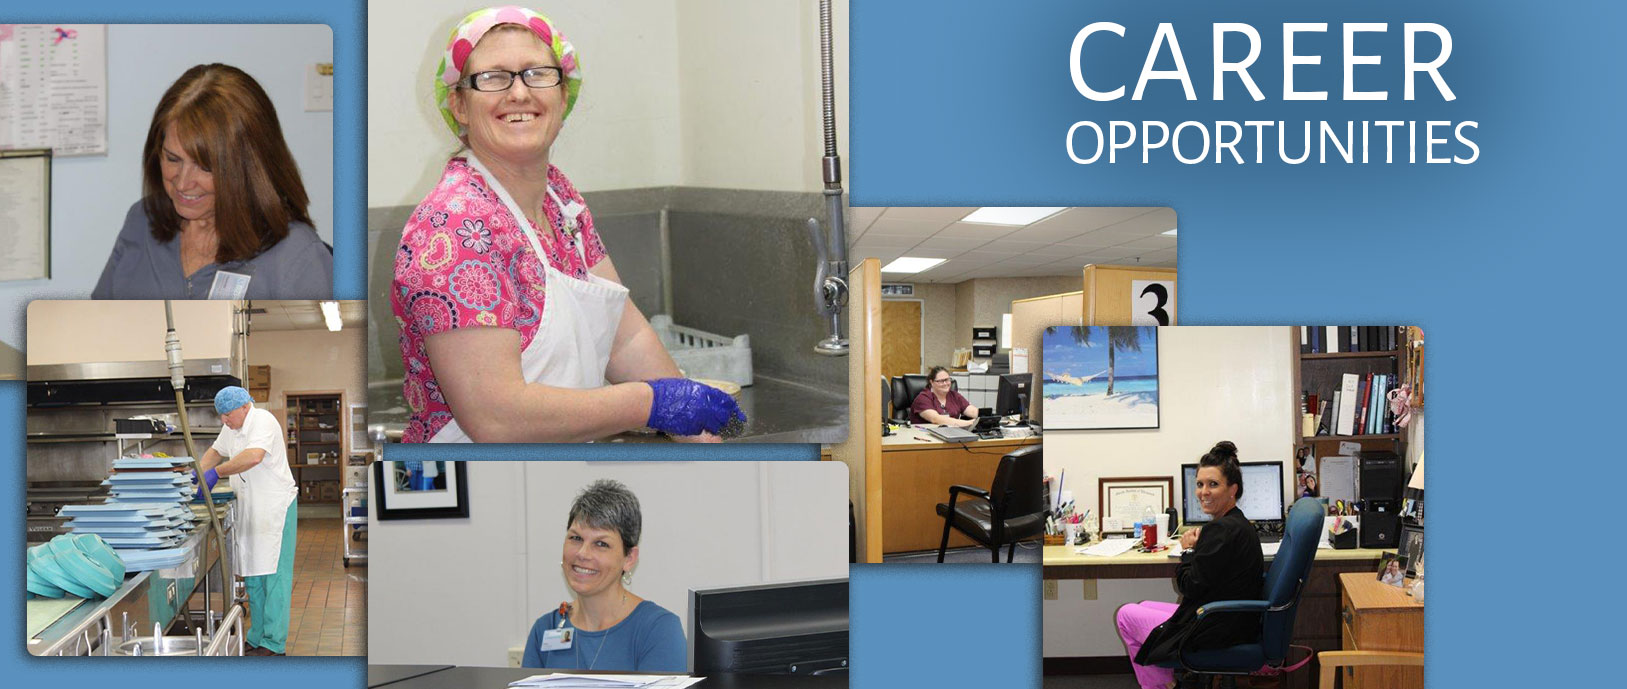 Career opportunities: smiling staff members fulfilling various tasks